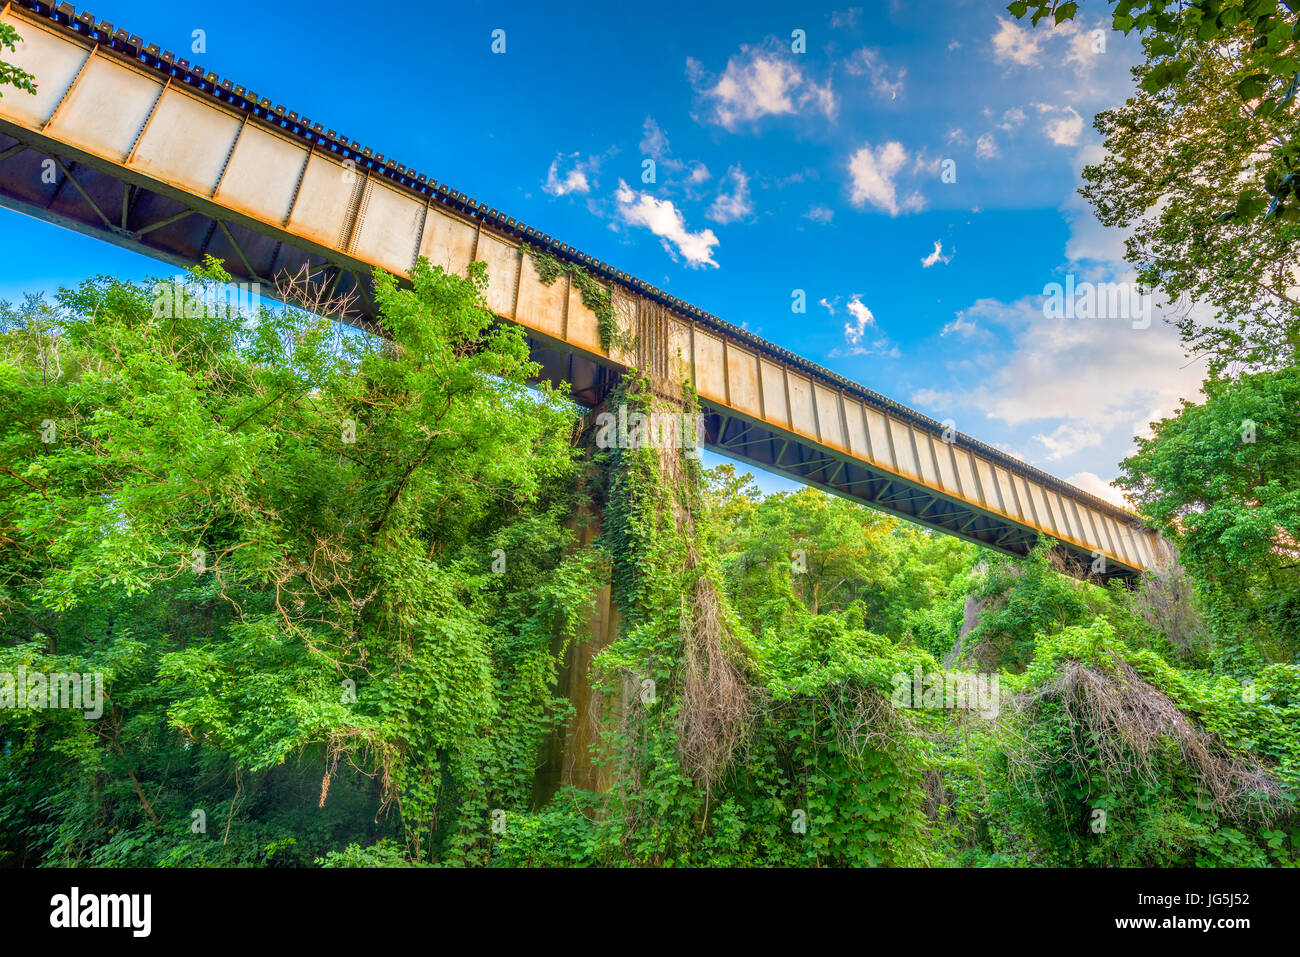 A train trestle passes through a rural area. - Stock Image